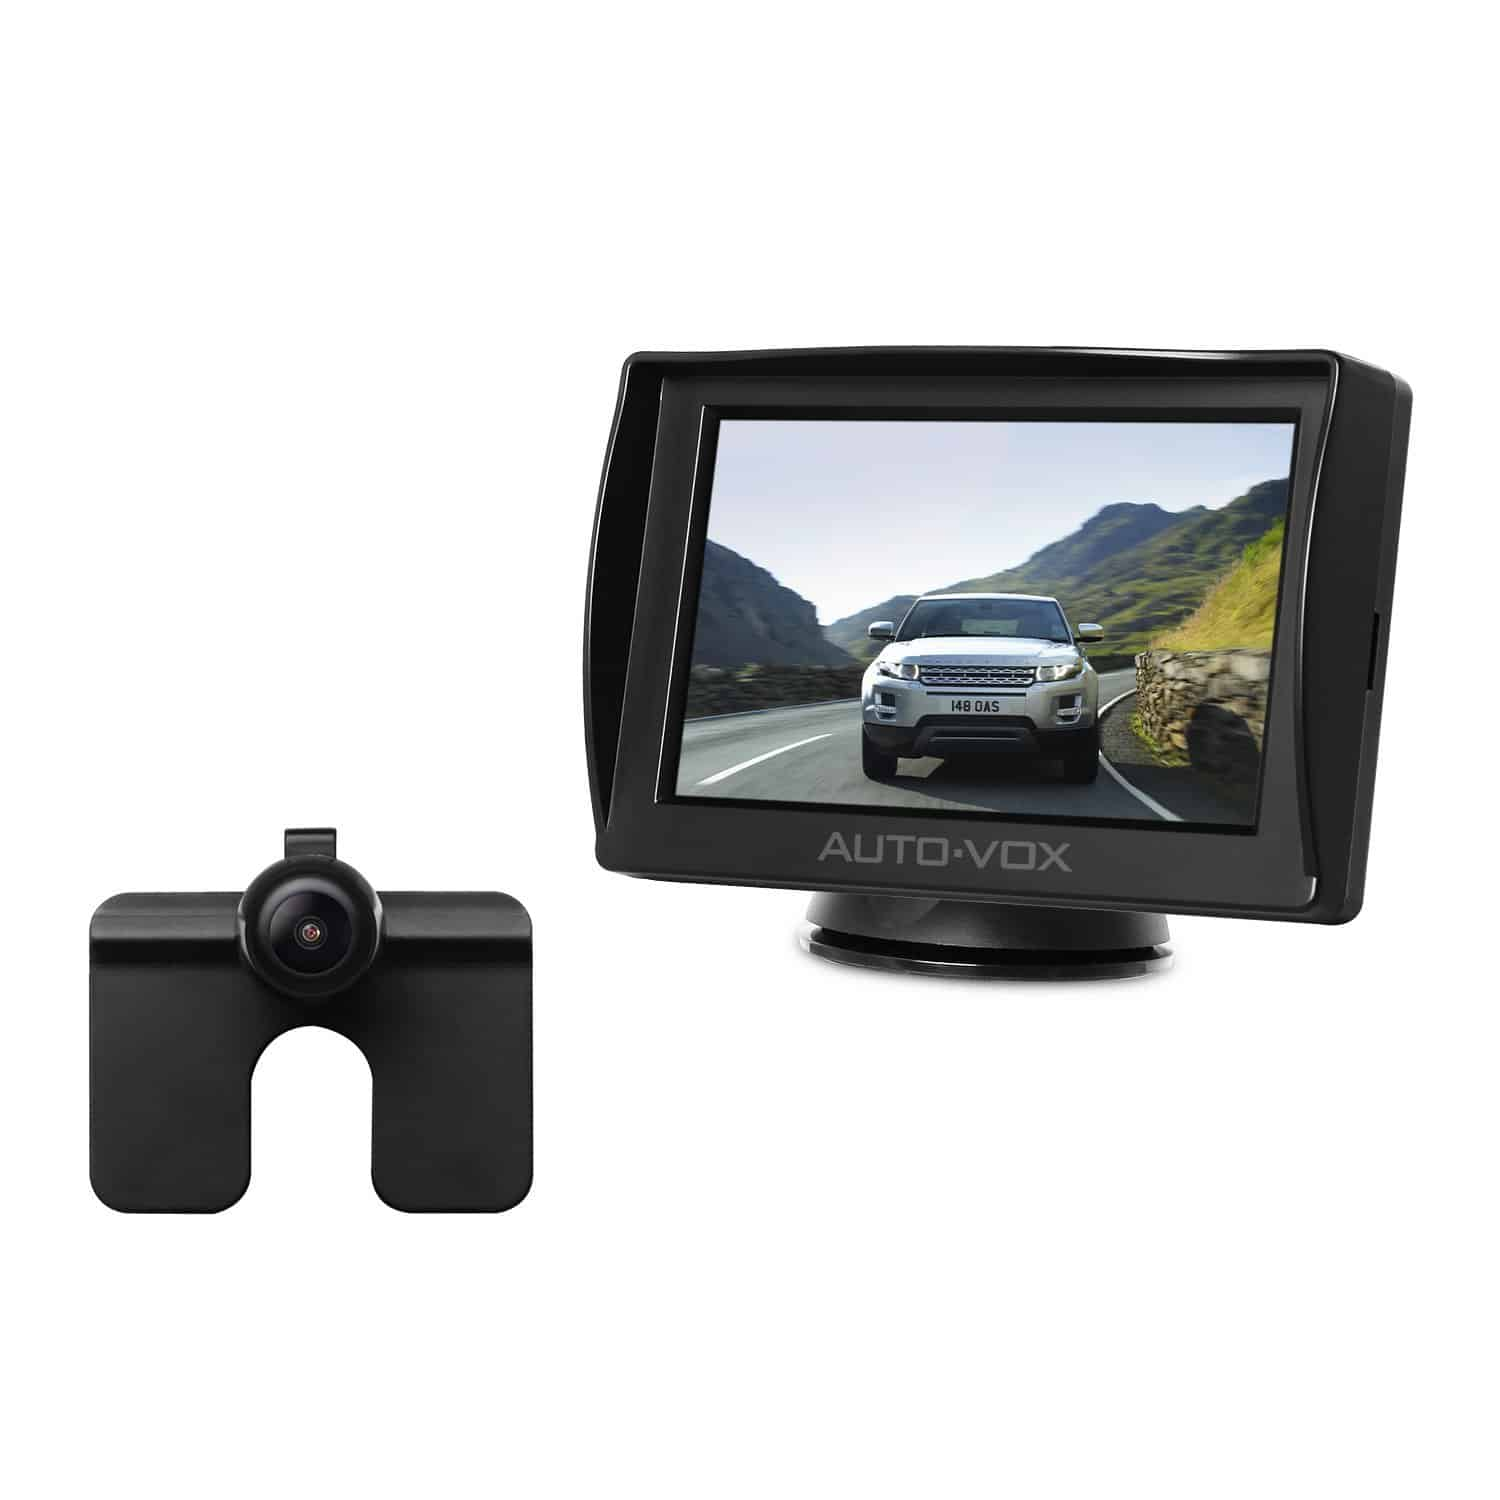 auto vox m1 car rearview backup camera kit with 4 3 tft lcd rear view. Black Bedroom Furniture Sets. Home Design Ideas